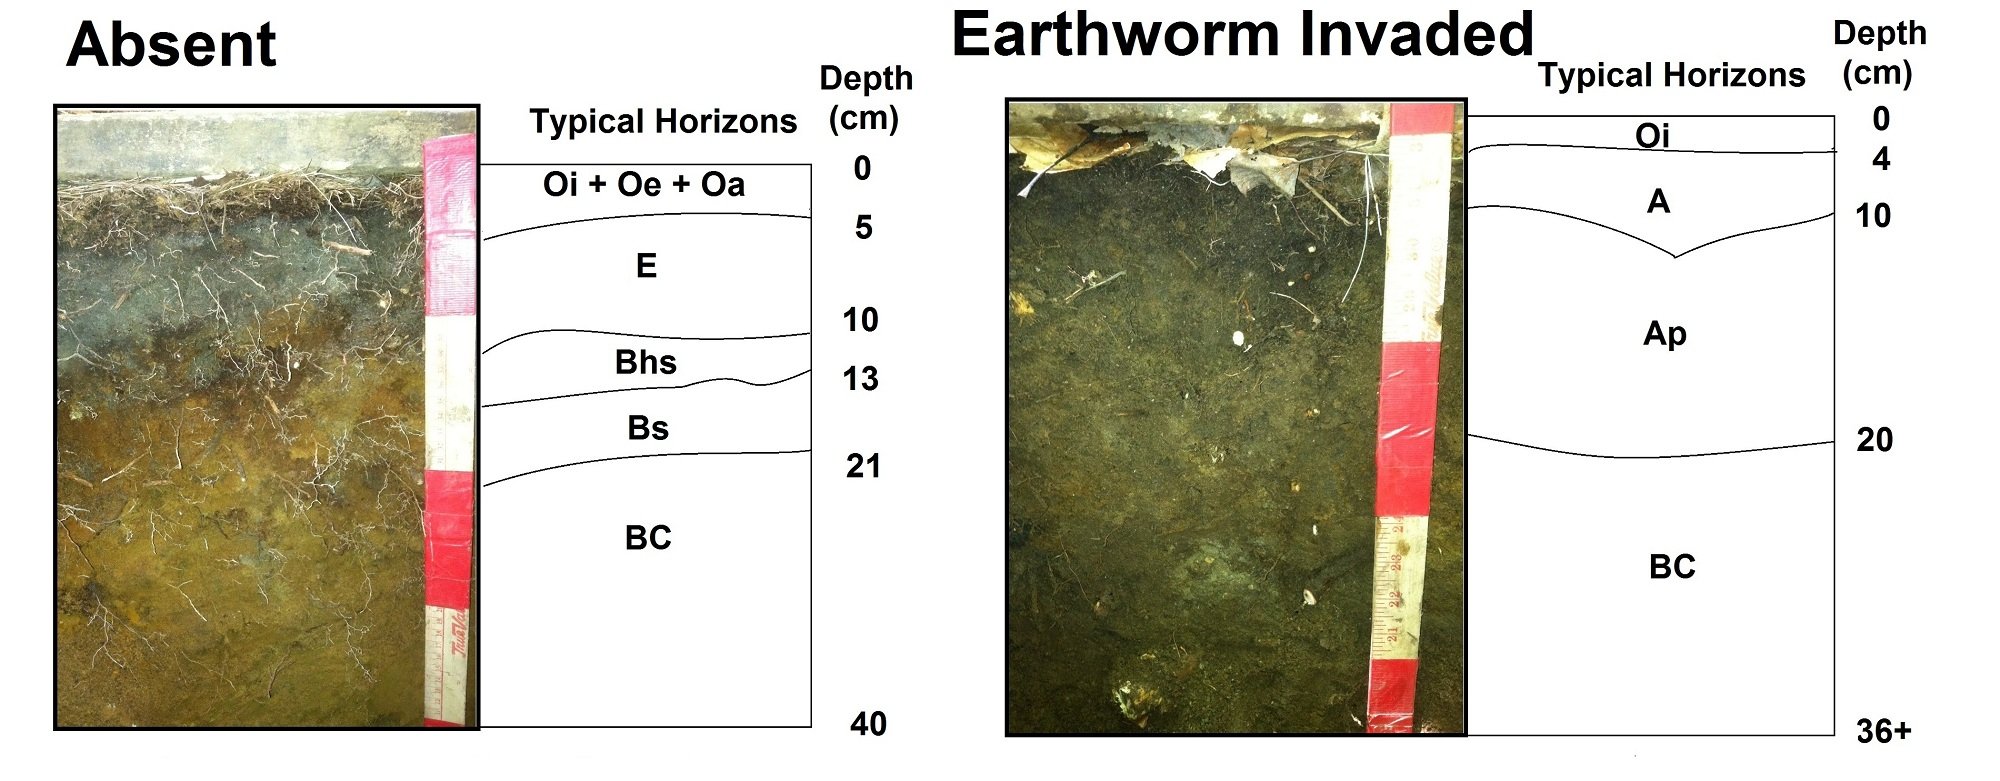 Soil morphology of earthworm invaded soils